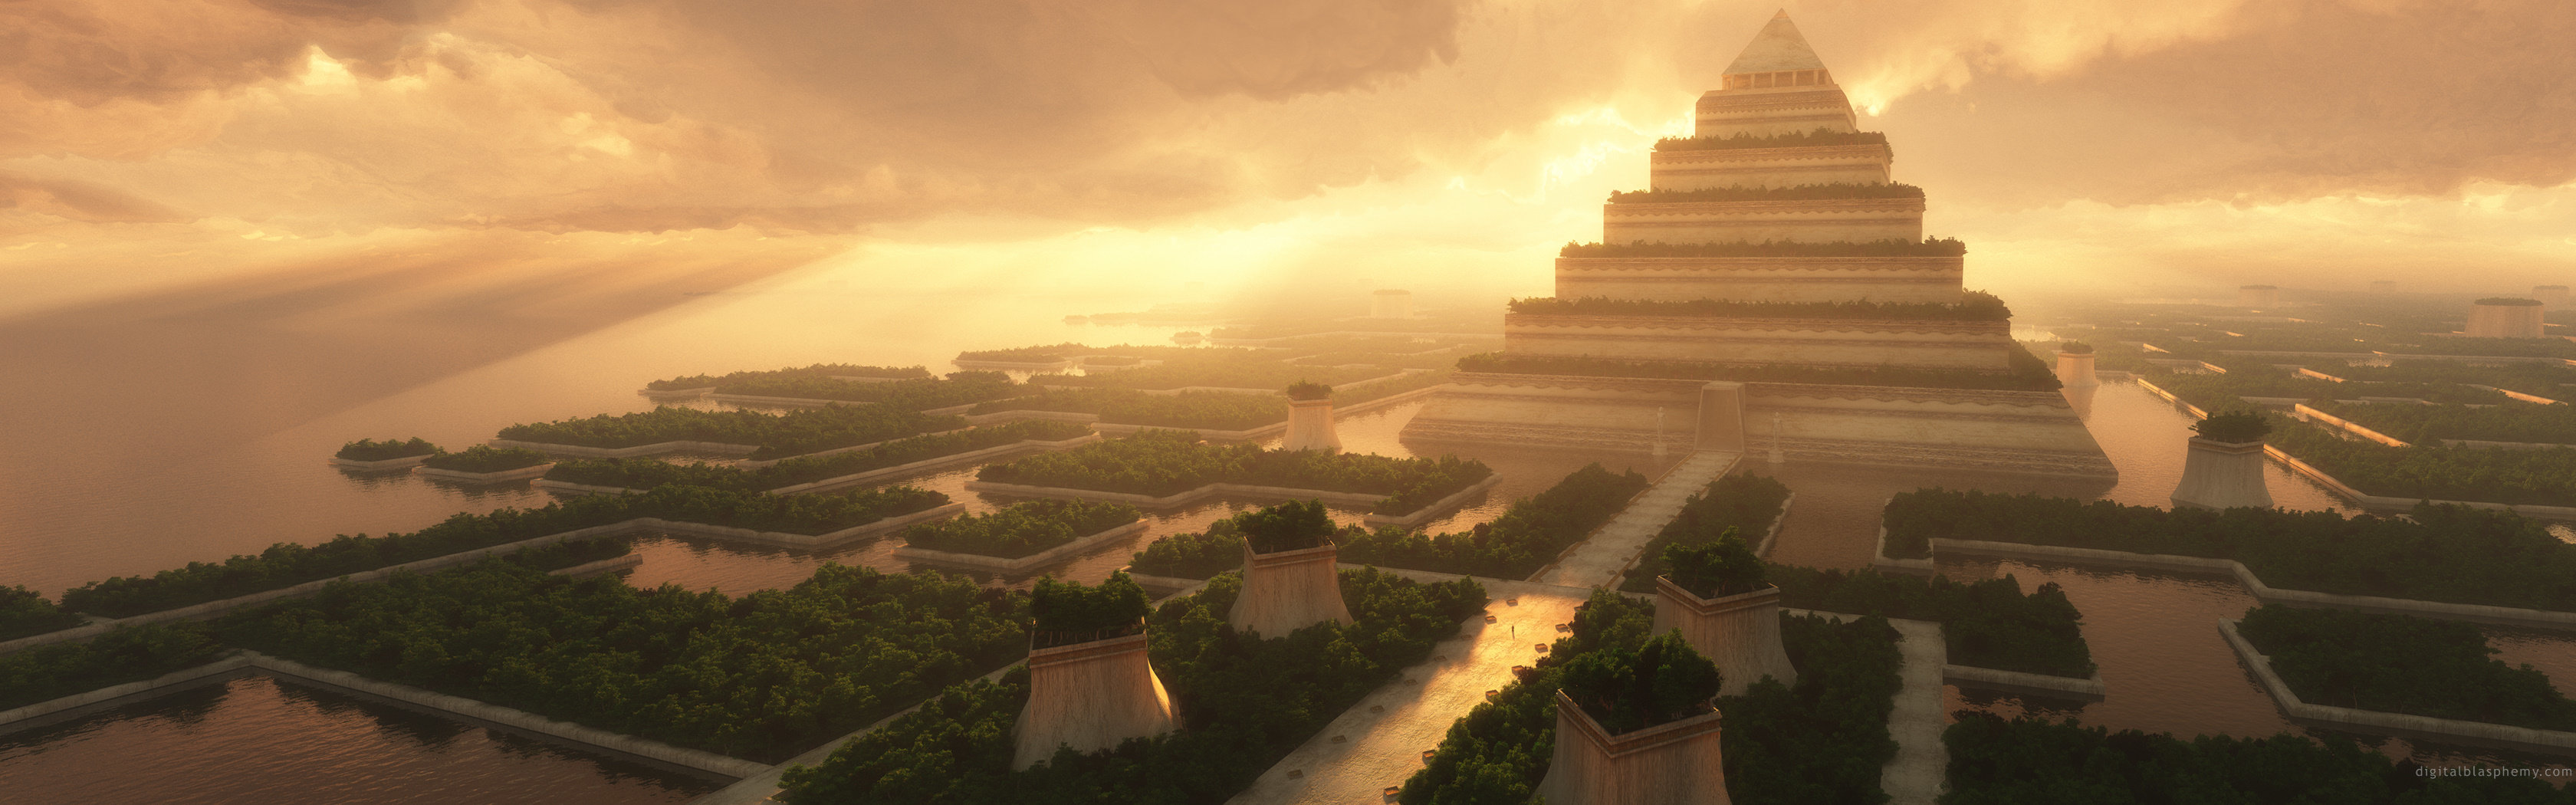 view Temples aztec pyramids HD Wallpaper